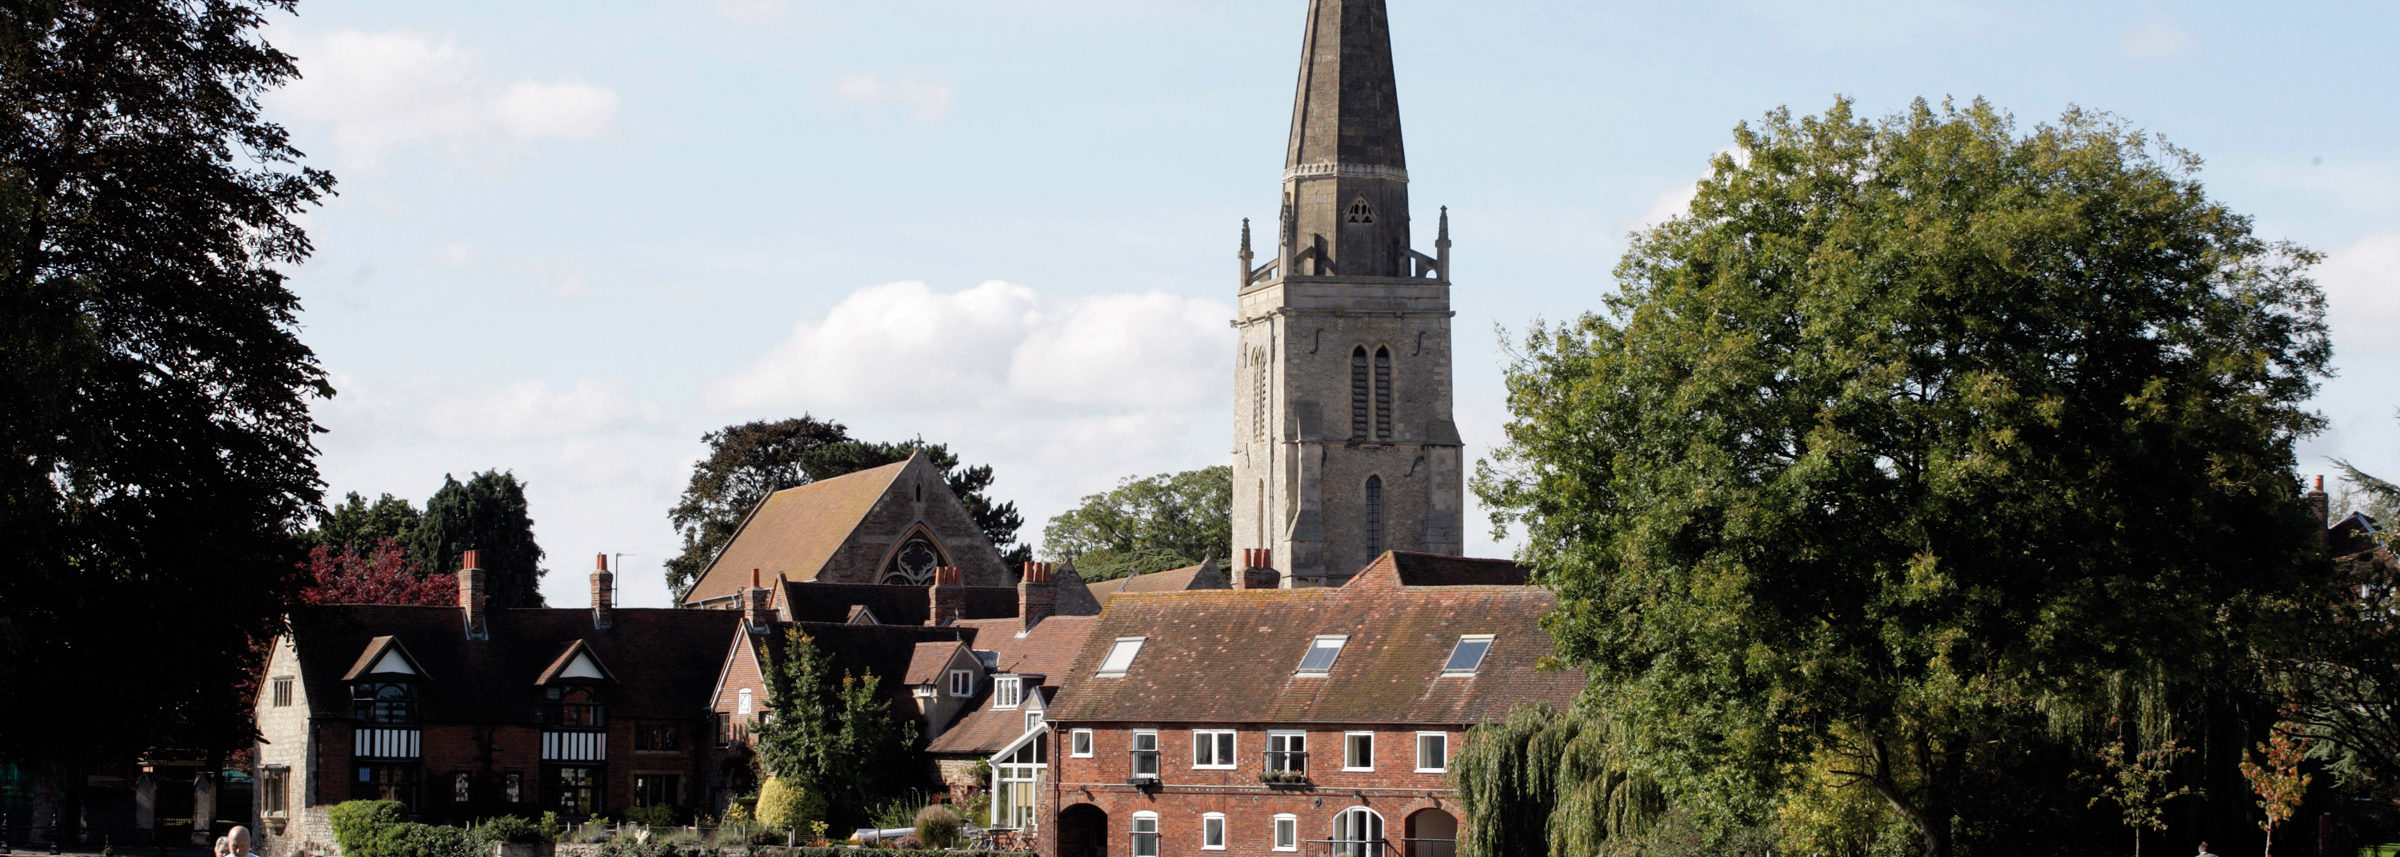 The Thames riverside location of The Old Gaol in Abingdon-on-Thames, near Oxford, Oxfordshire, offering luxury serviced apartments.